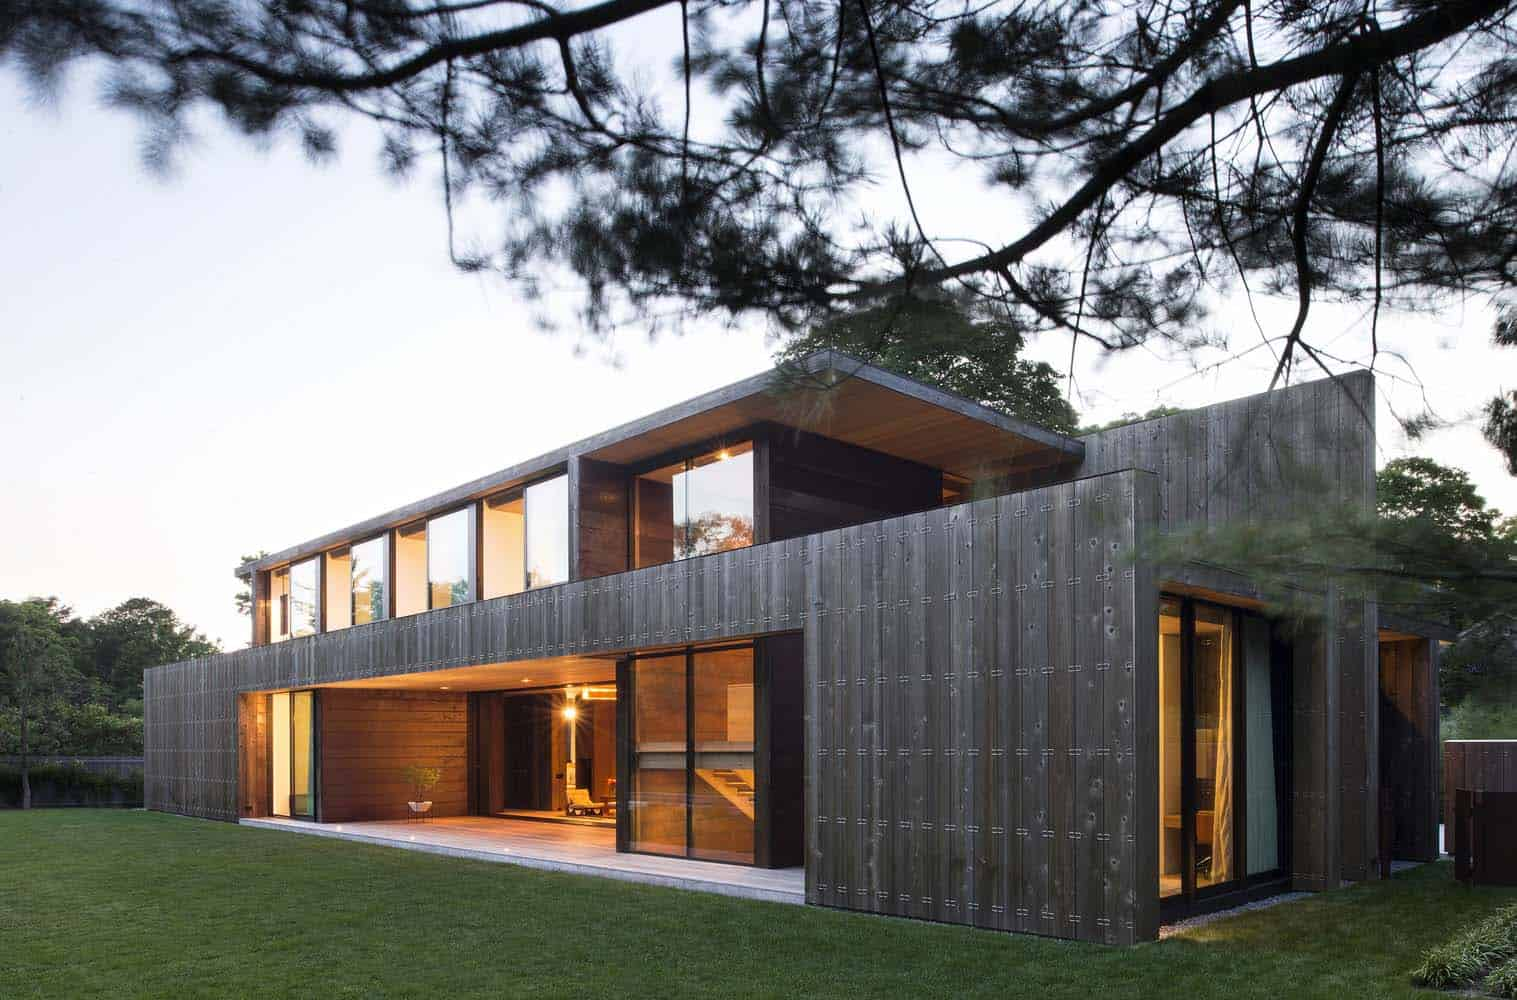 Architecture-Modern-Home-Bates Masi Architects-01-1 Kindesign